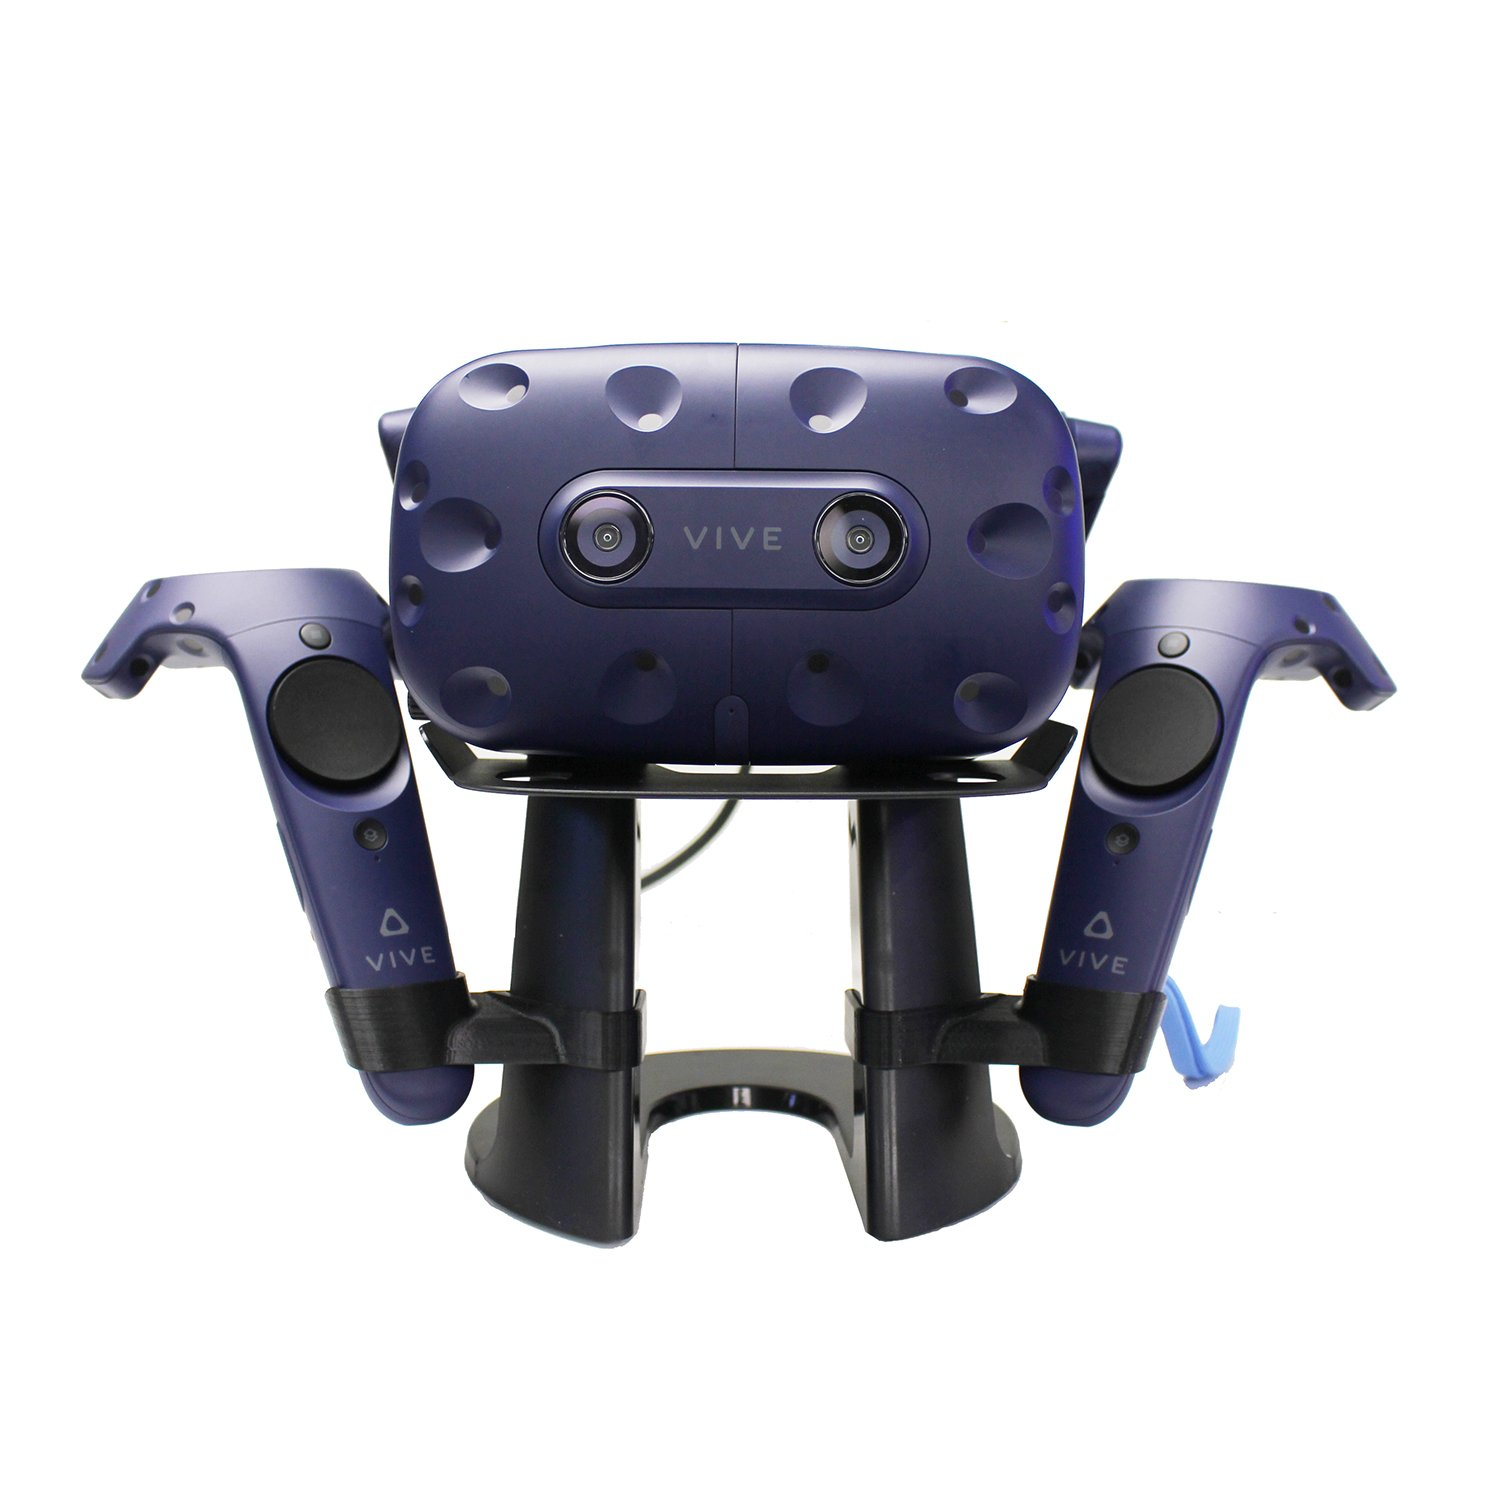 AMVR VR Stand,VR Headset Display Holder for HTC Vive Headset or HTC Vive Pro Headset and Controllers by M AMVR